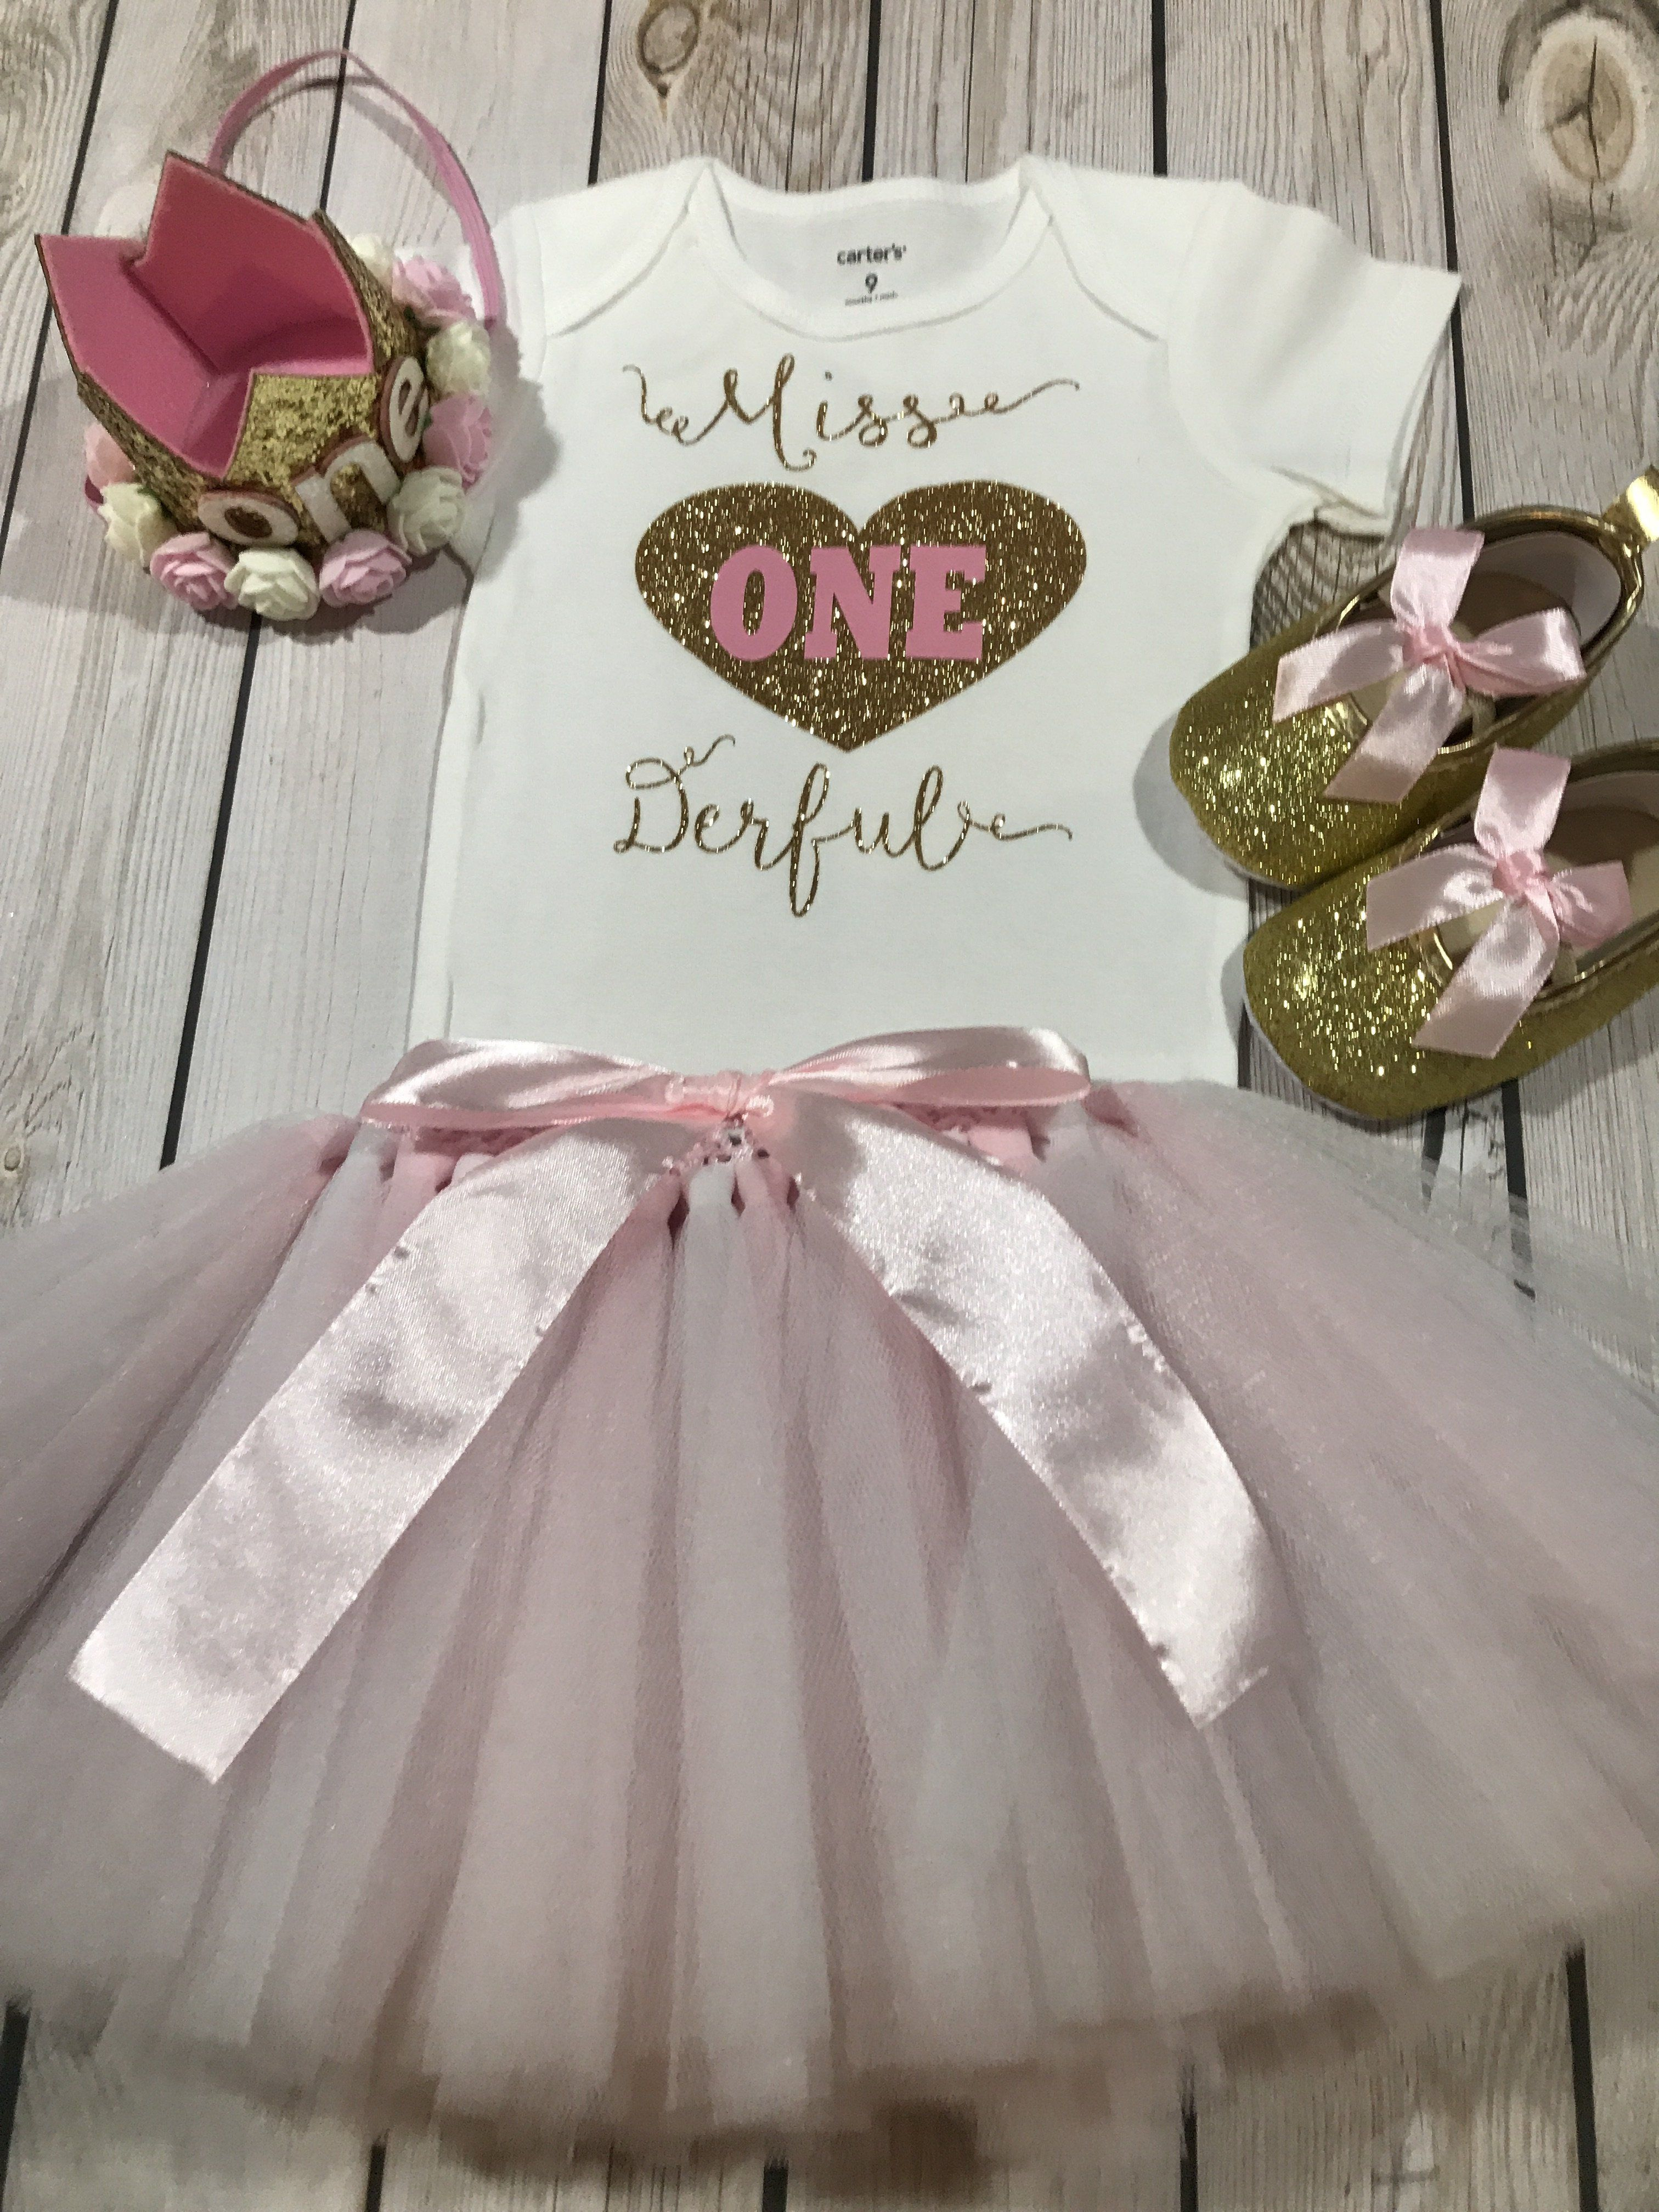 c7c99577a202c Miss ONE derful outfit baby girl, first birthday outfit pink, crown ...